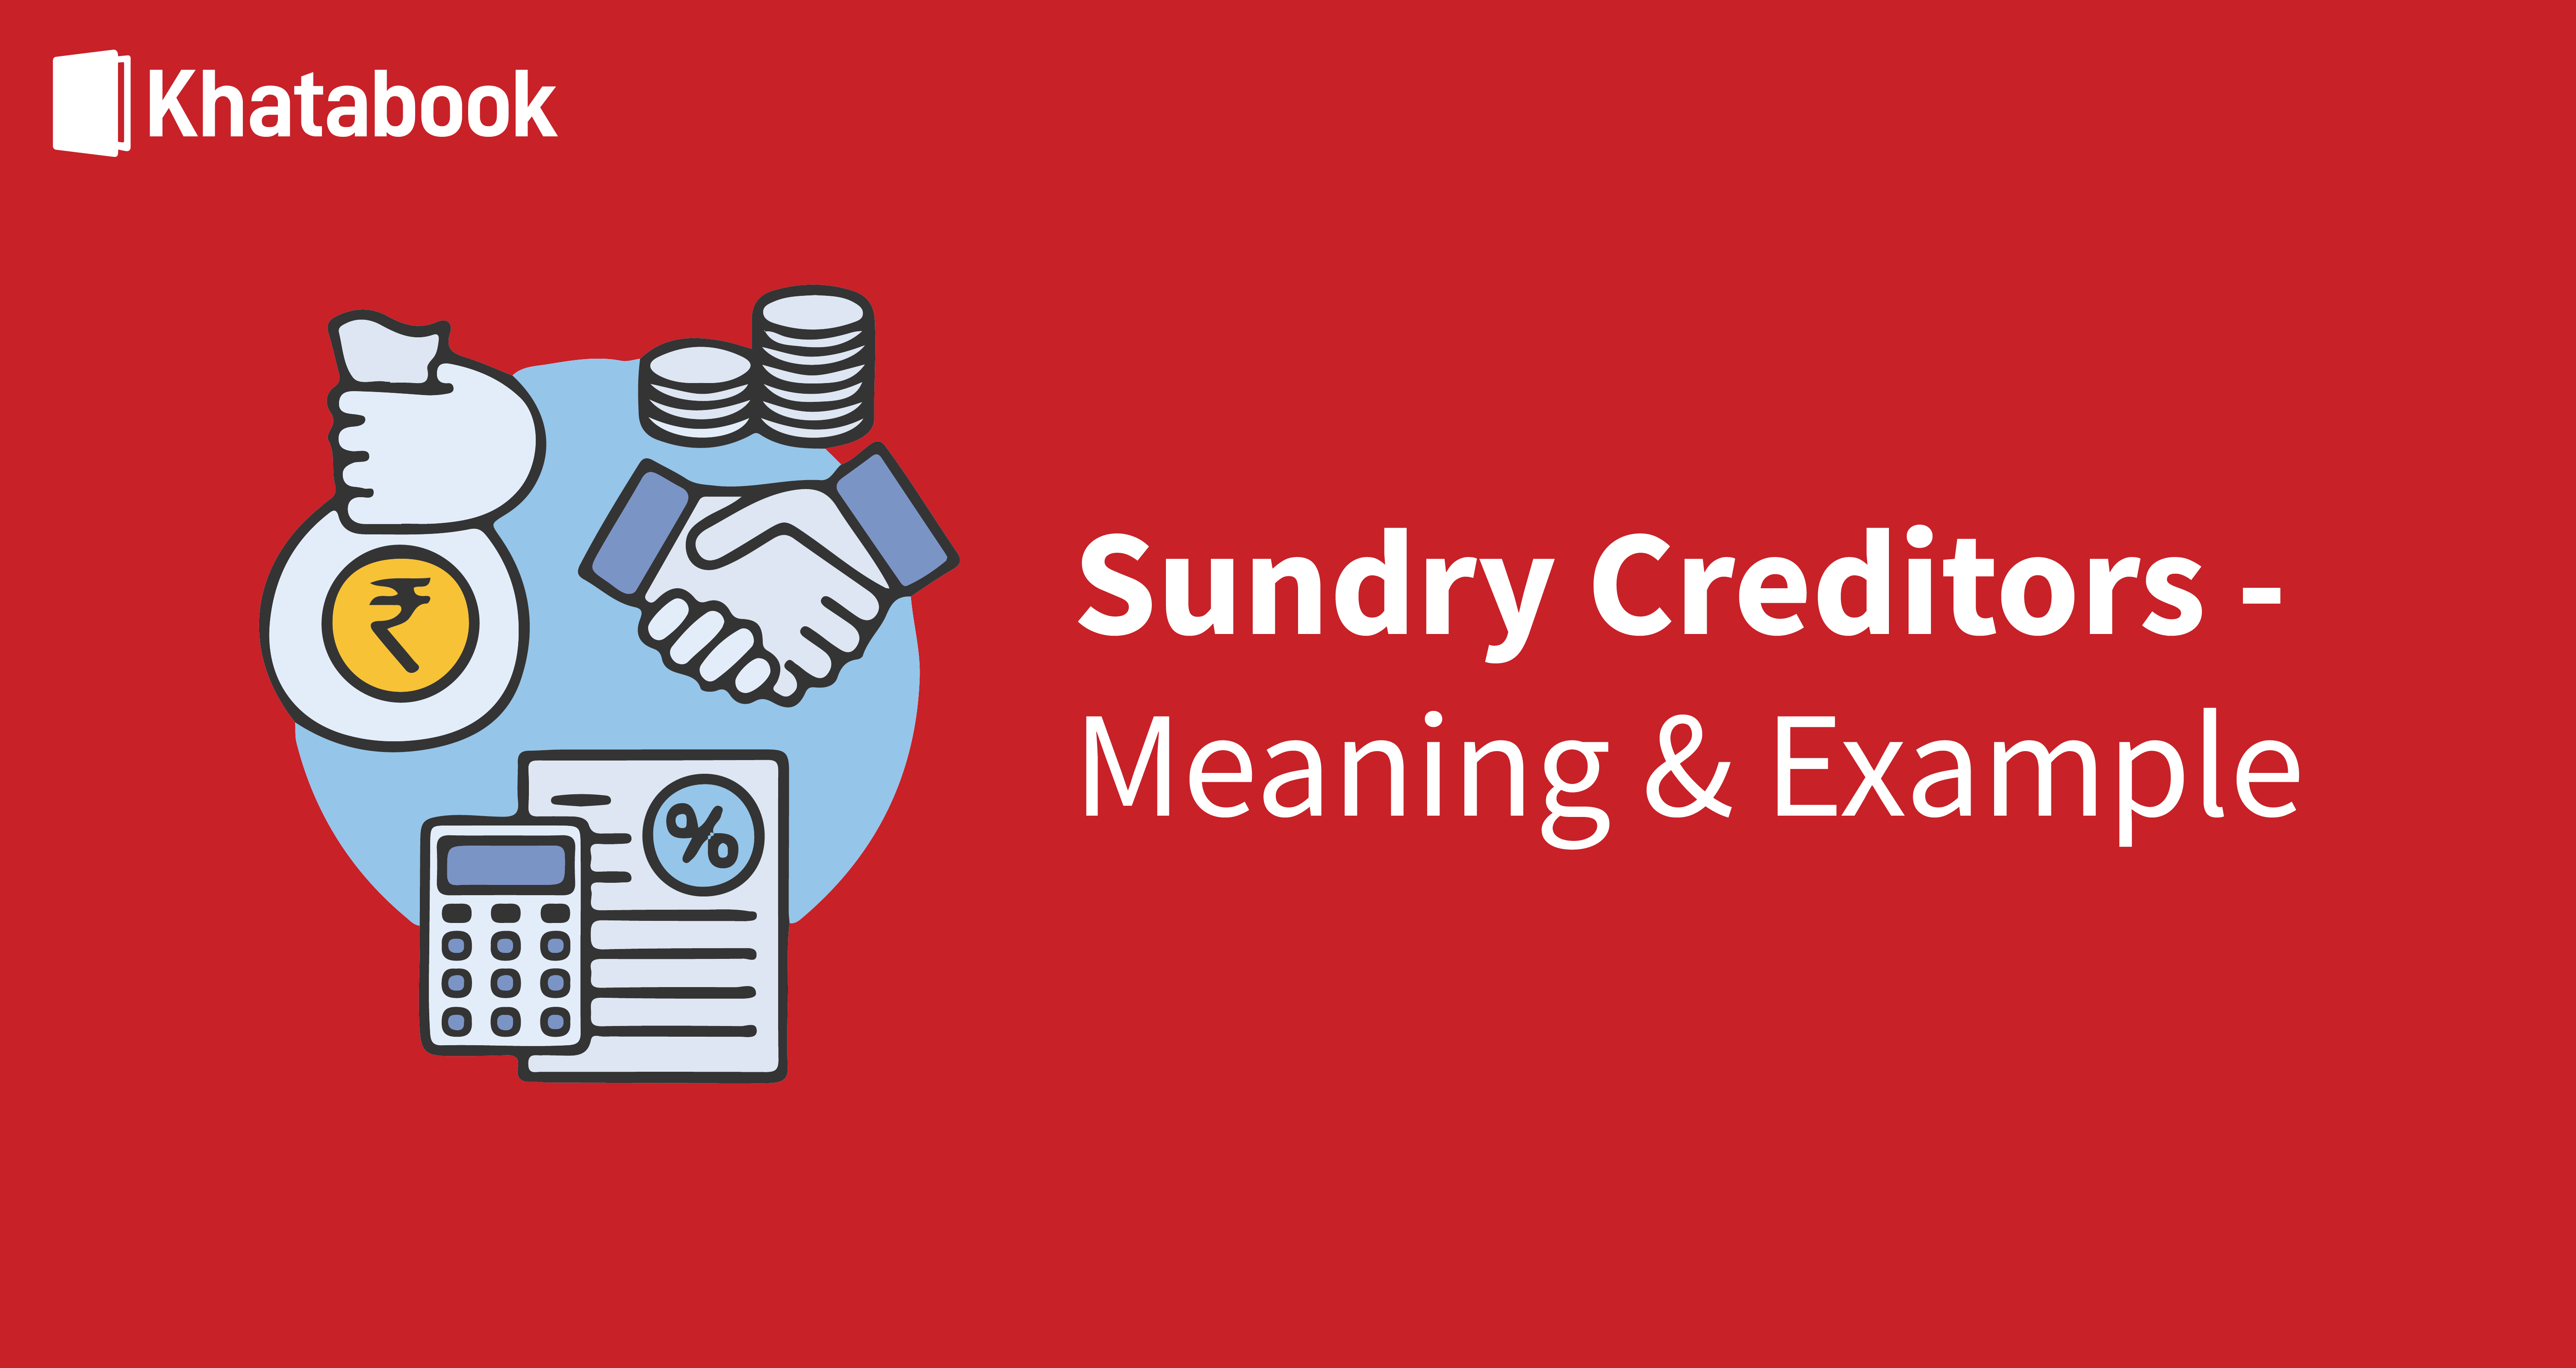 What are Sundry Creditors: Meaning & Examples